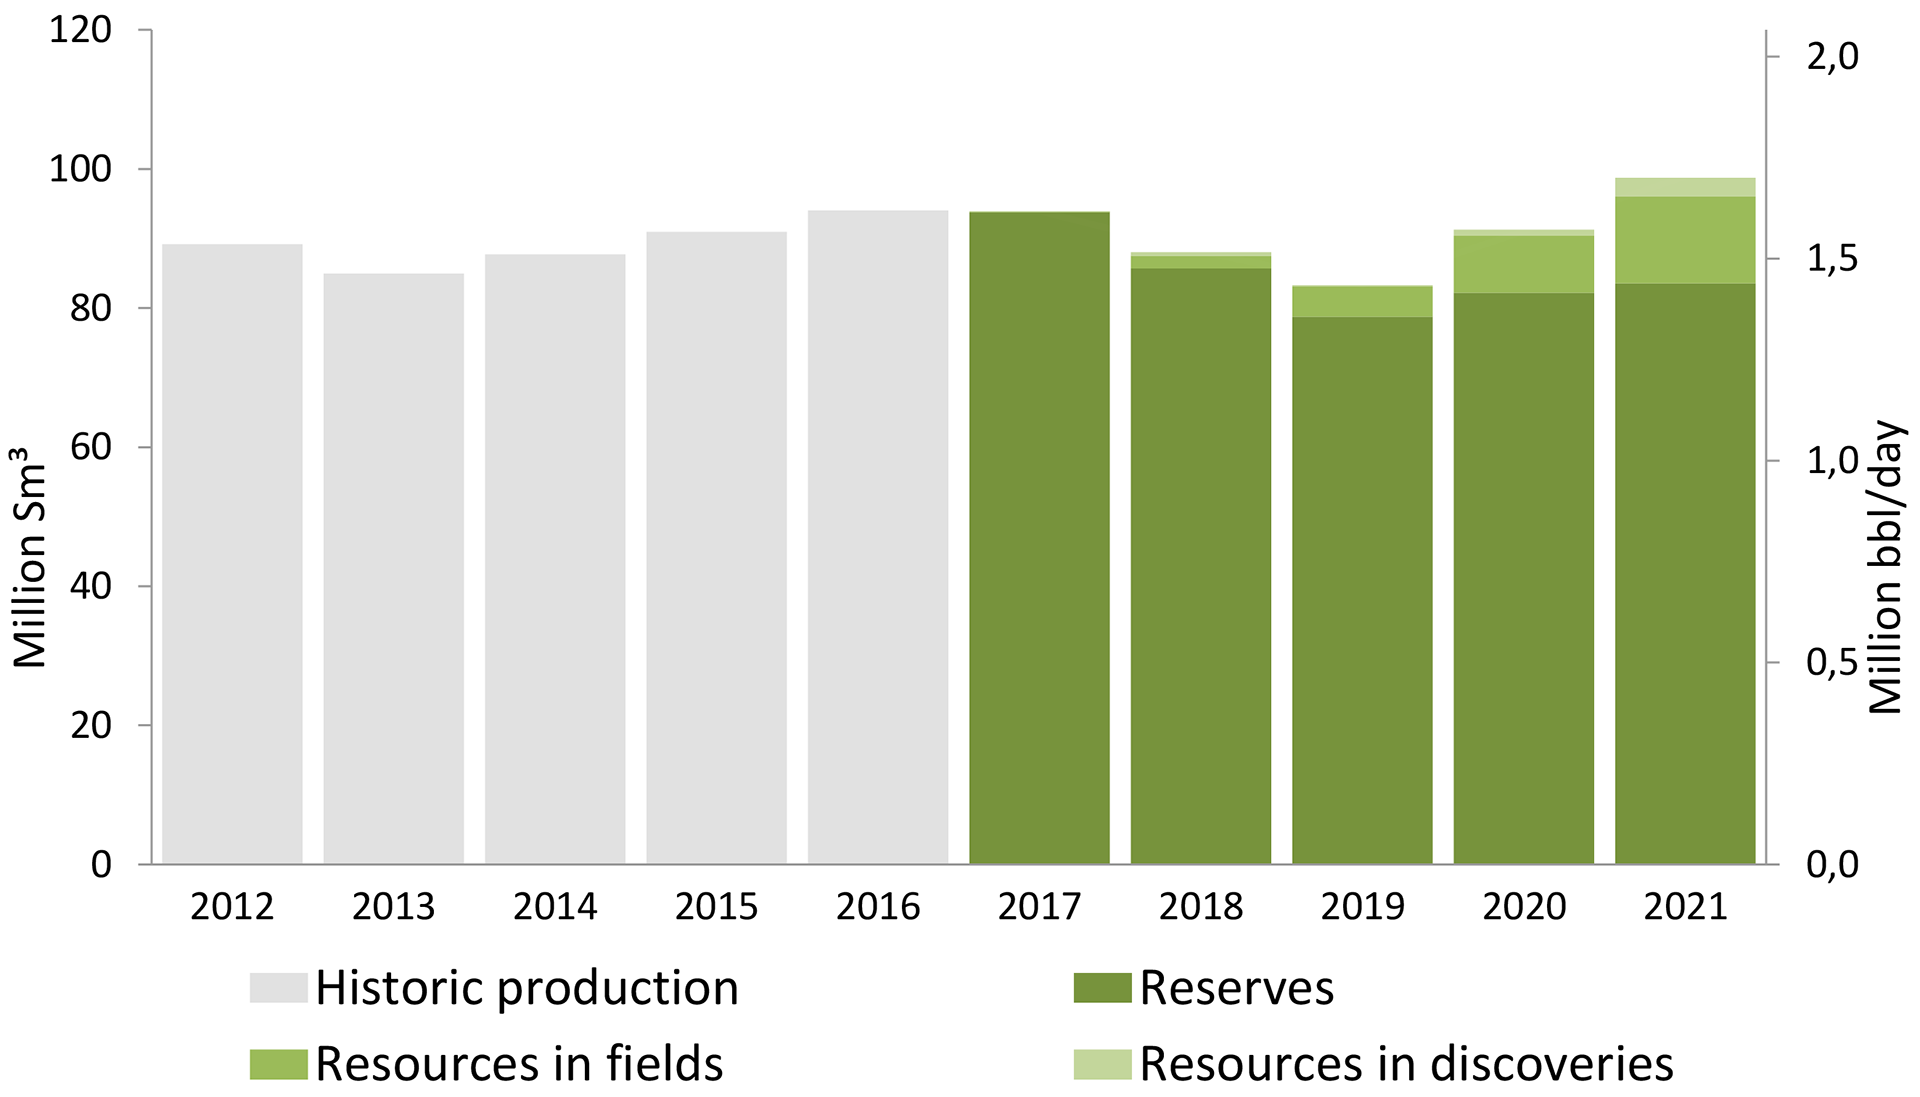 Figure 2‑3: Oil production 2012-2021 distributed by maturity